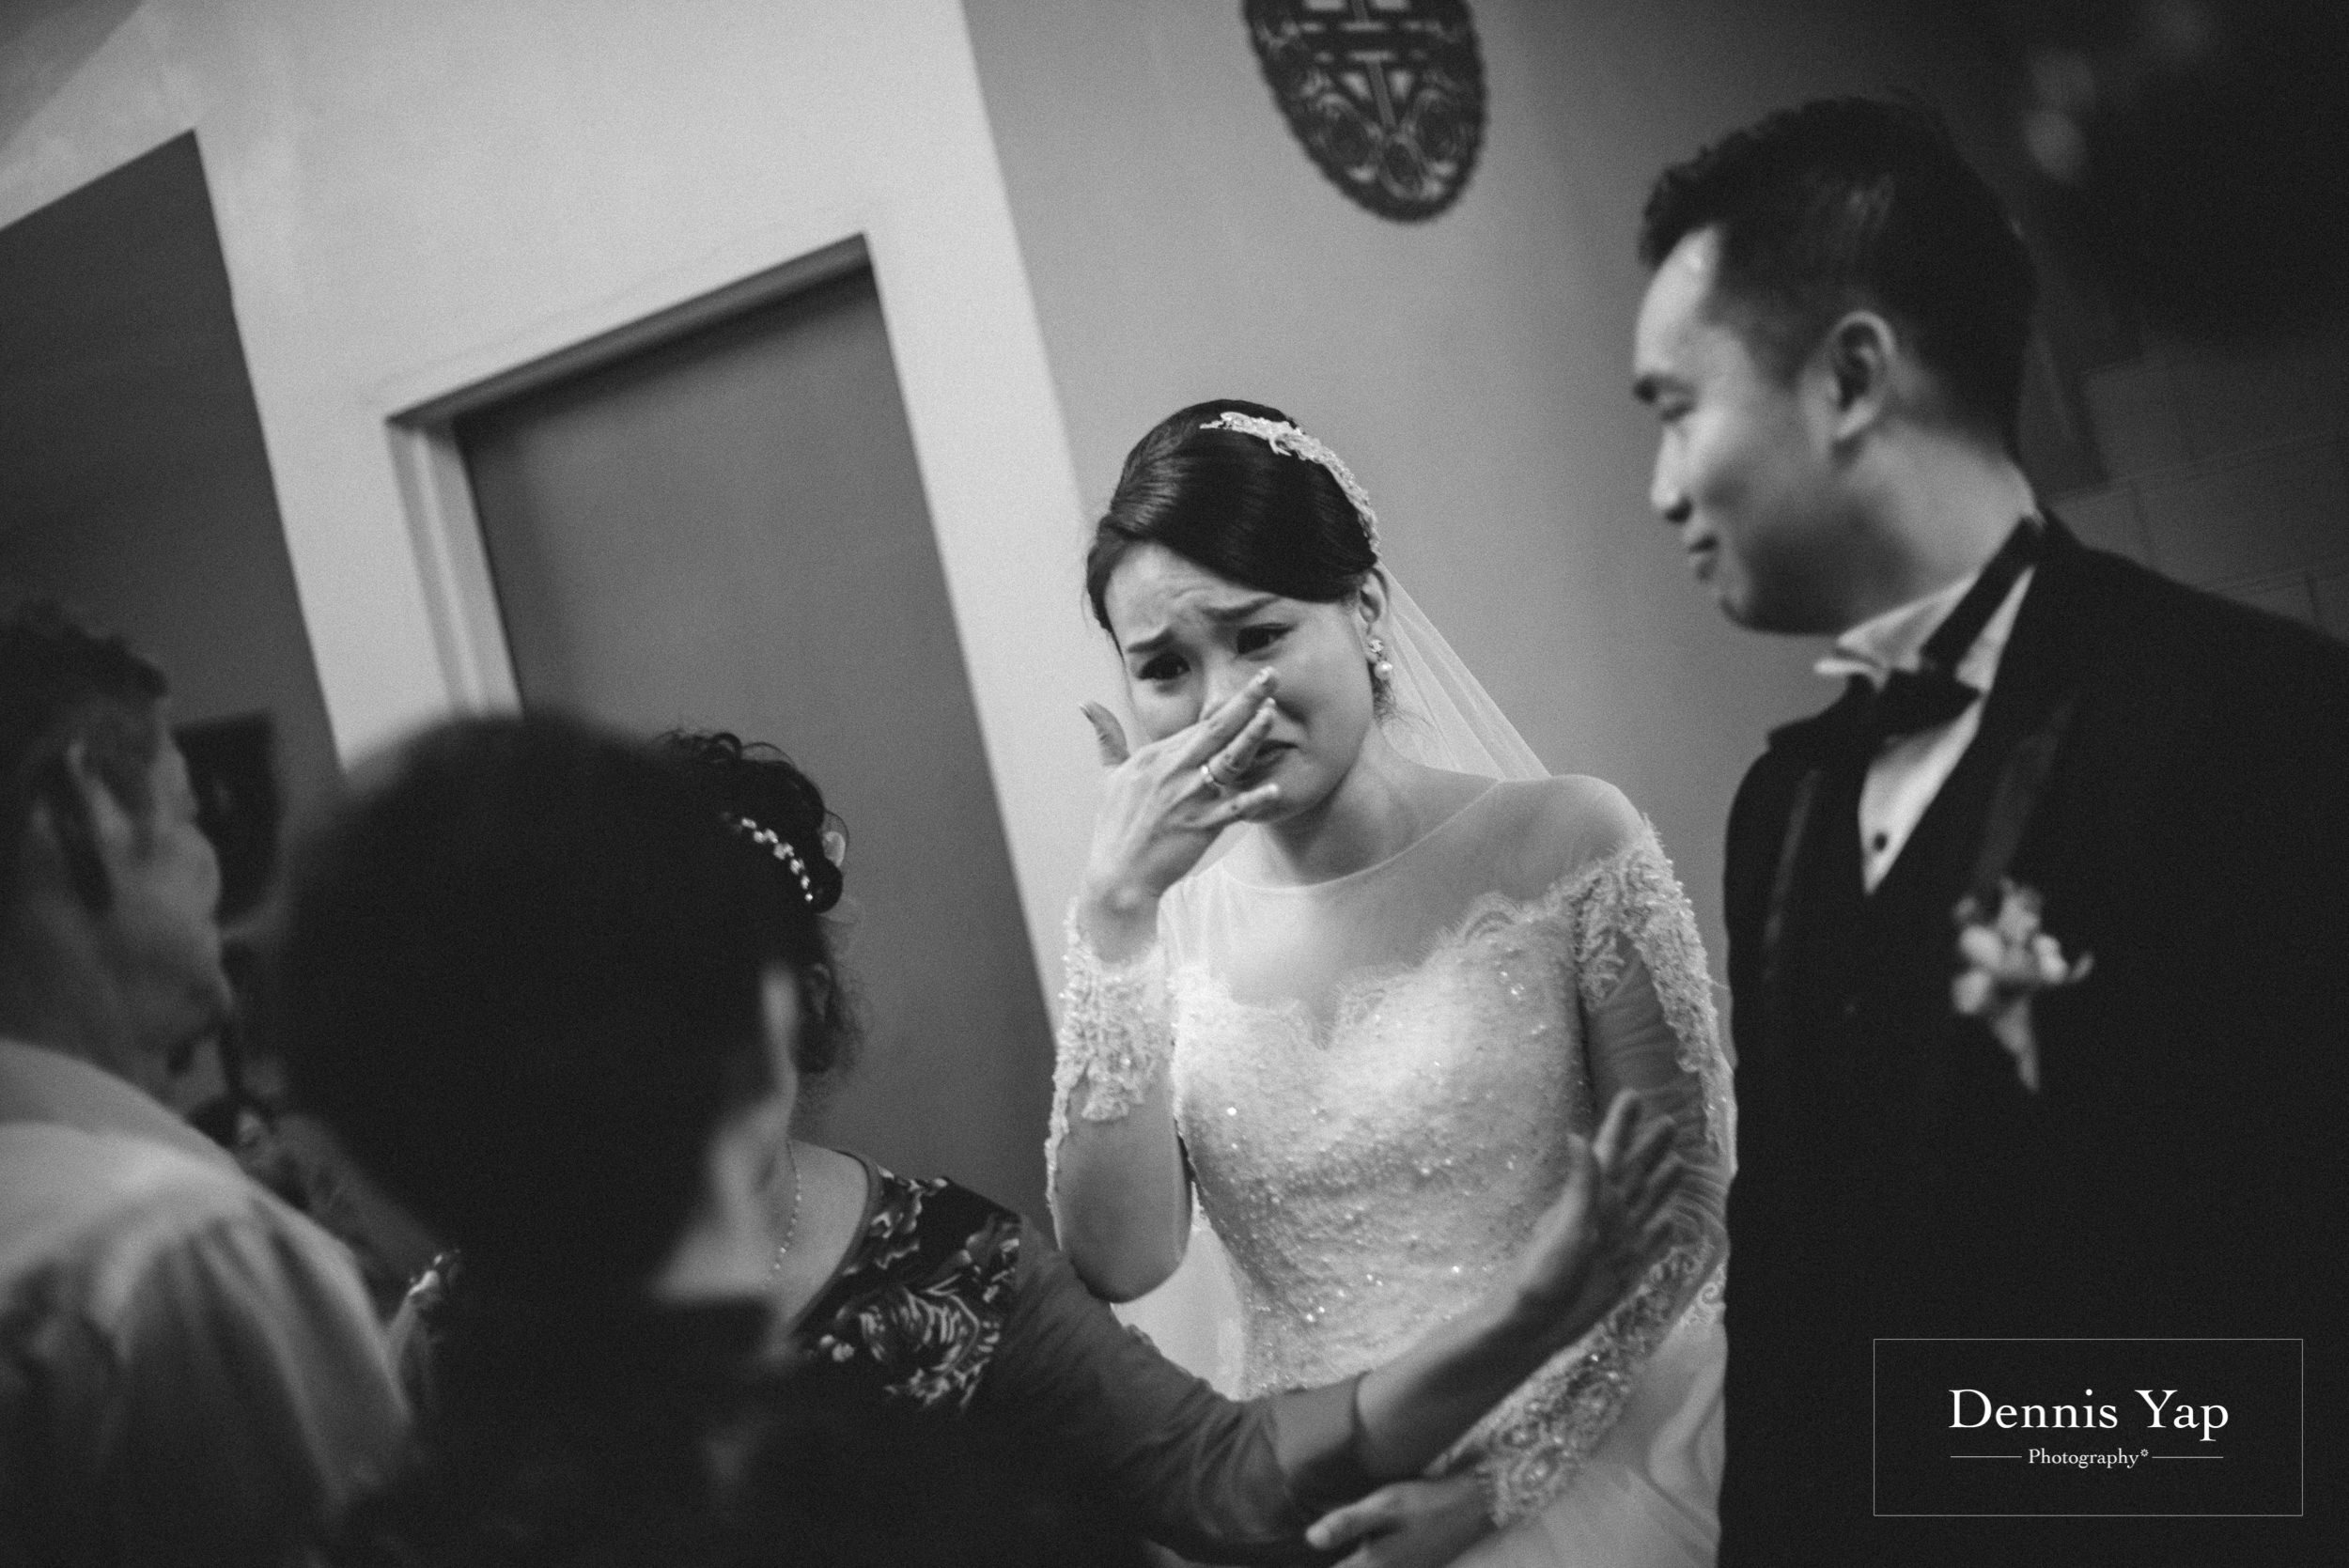 marcus emily wedding day gift exchange malaysia dennis yap photography-11.jpg